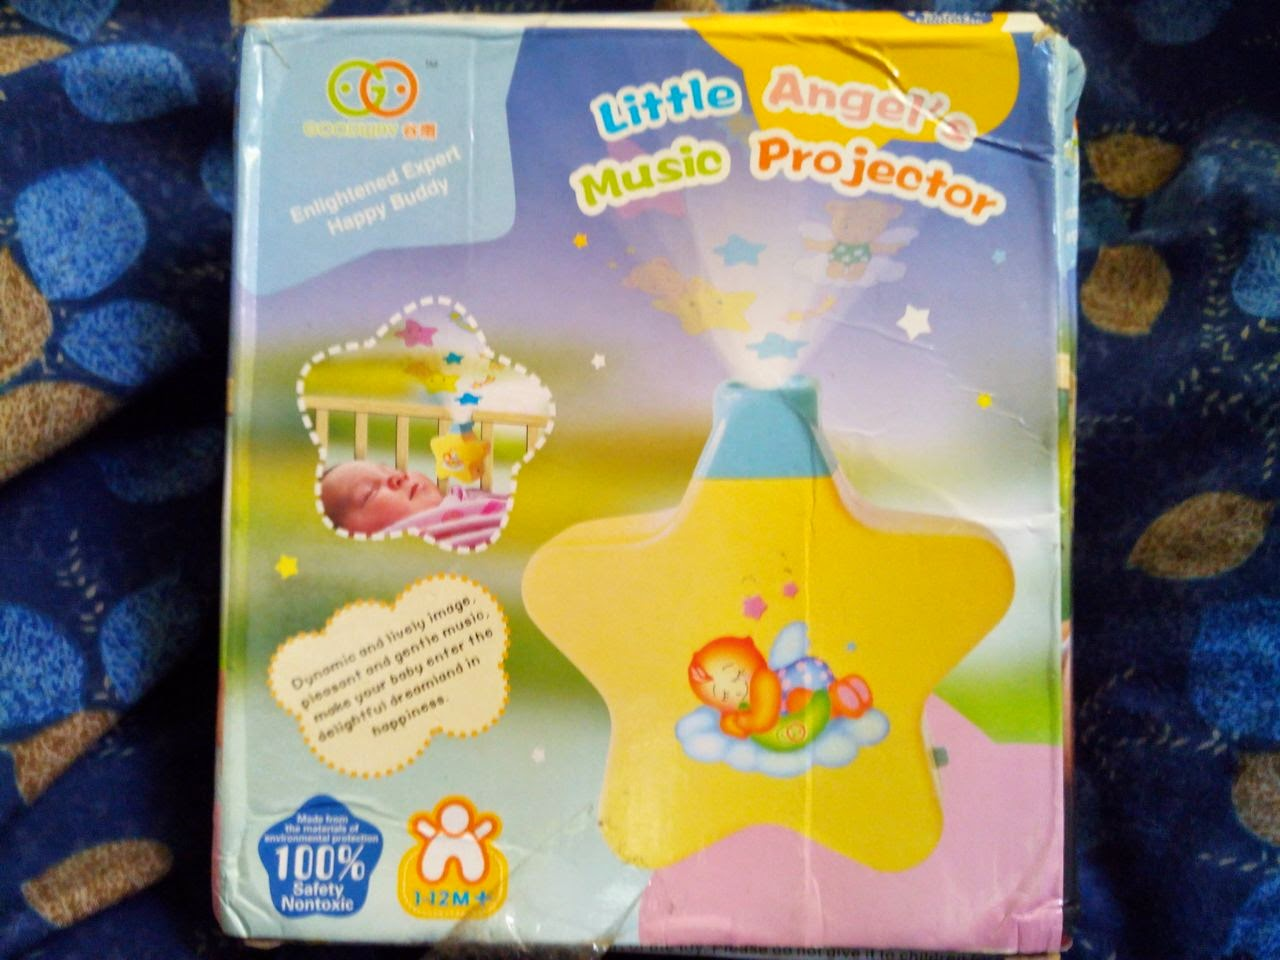 Little Angel Music Projector